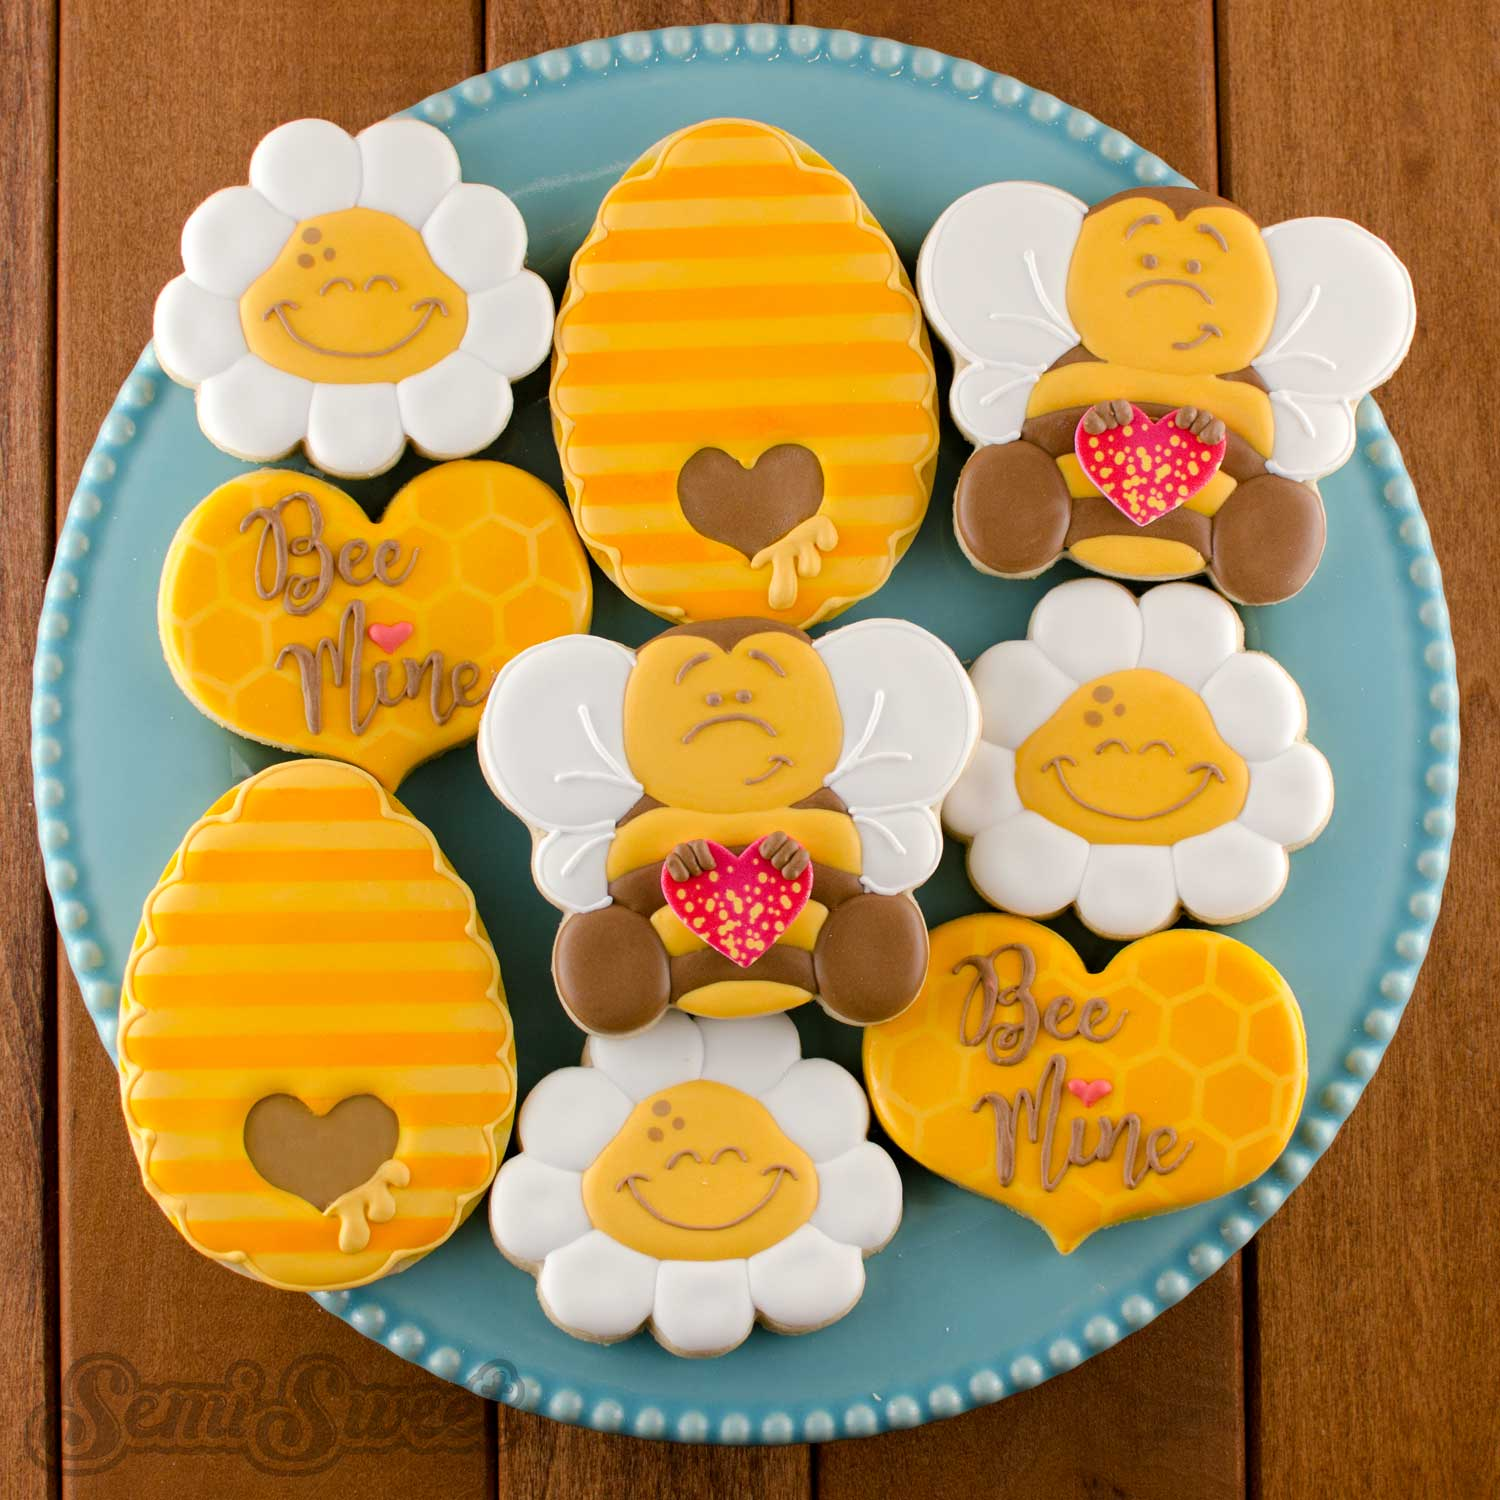 How to Make Valentine Bumble Bee Cookies